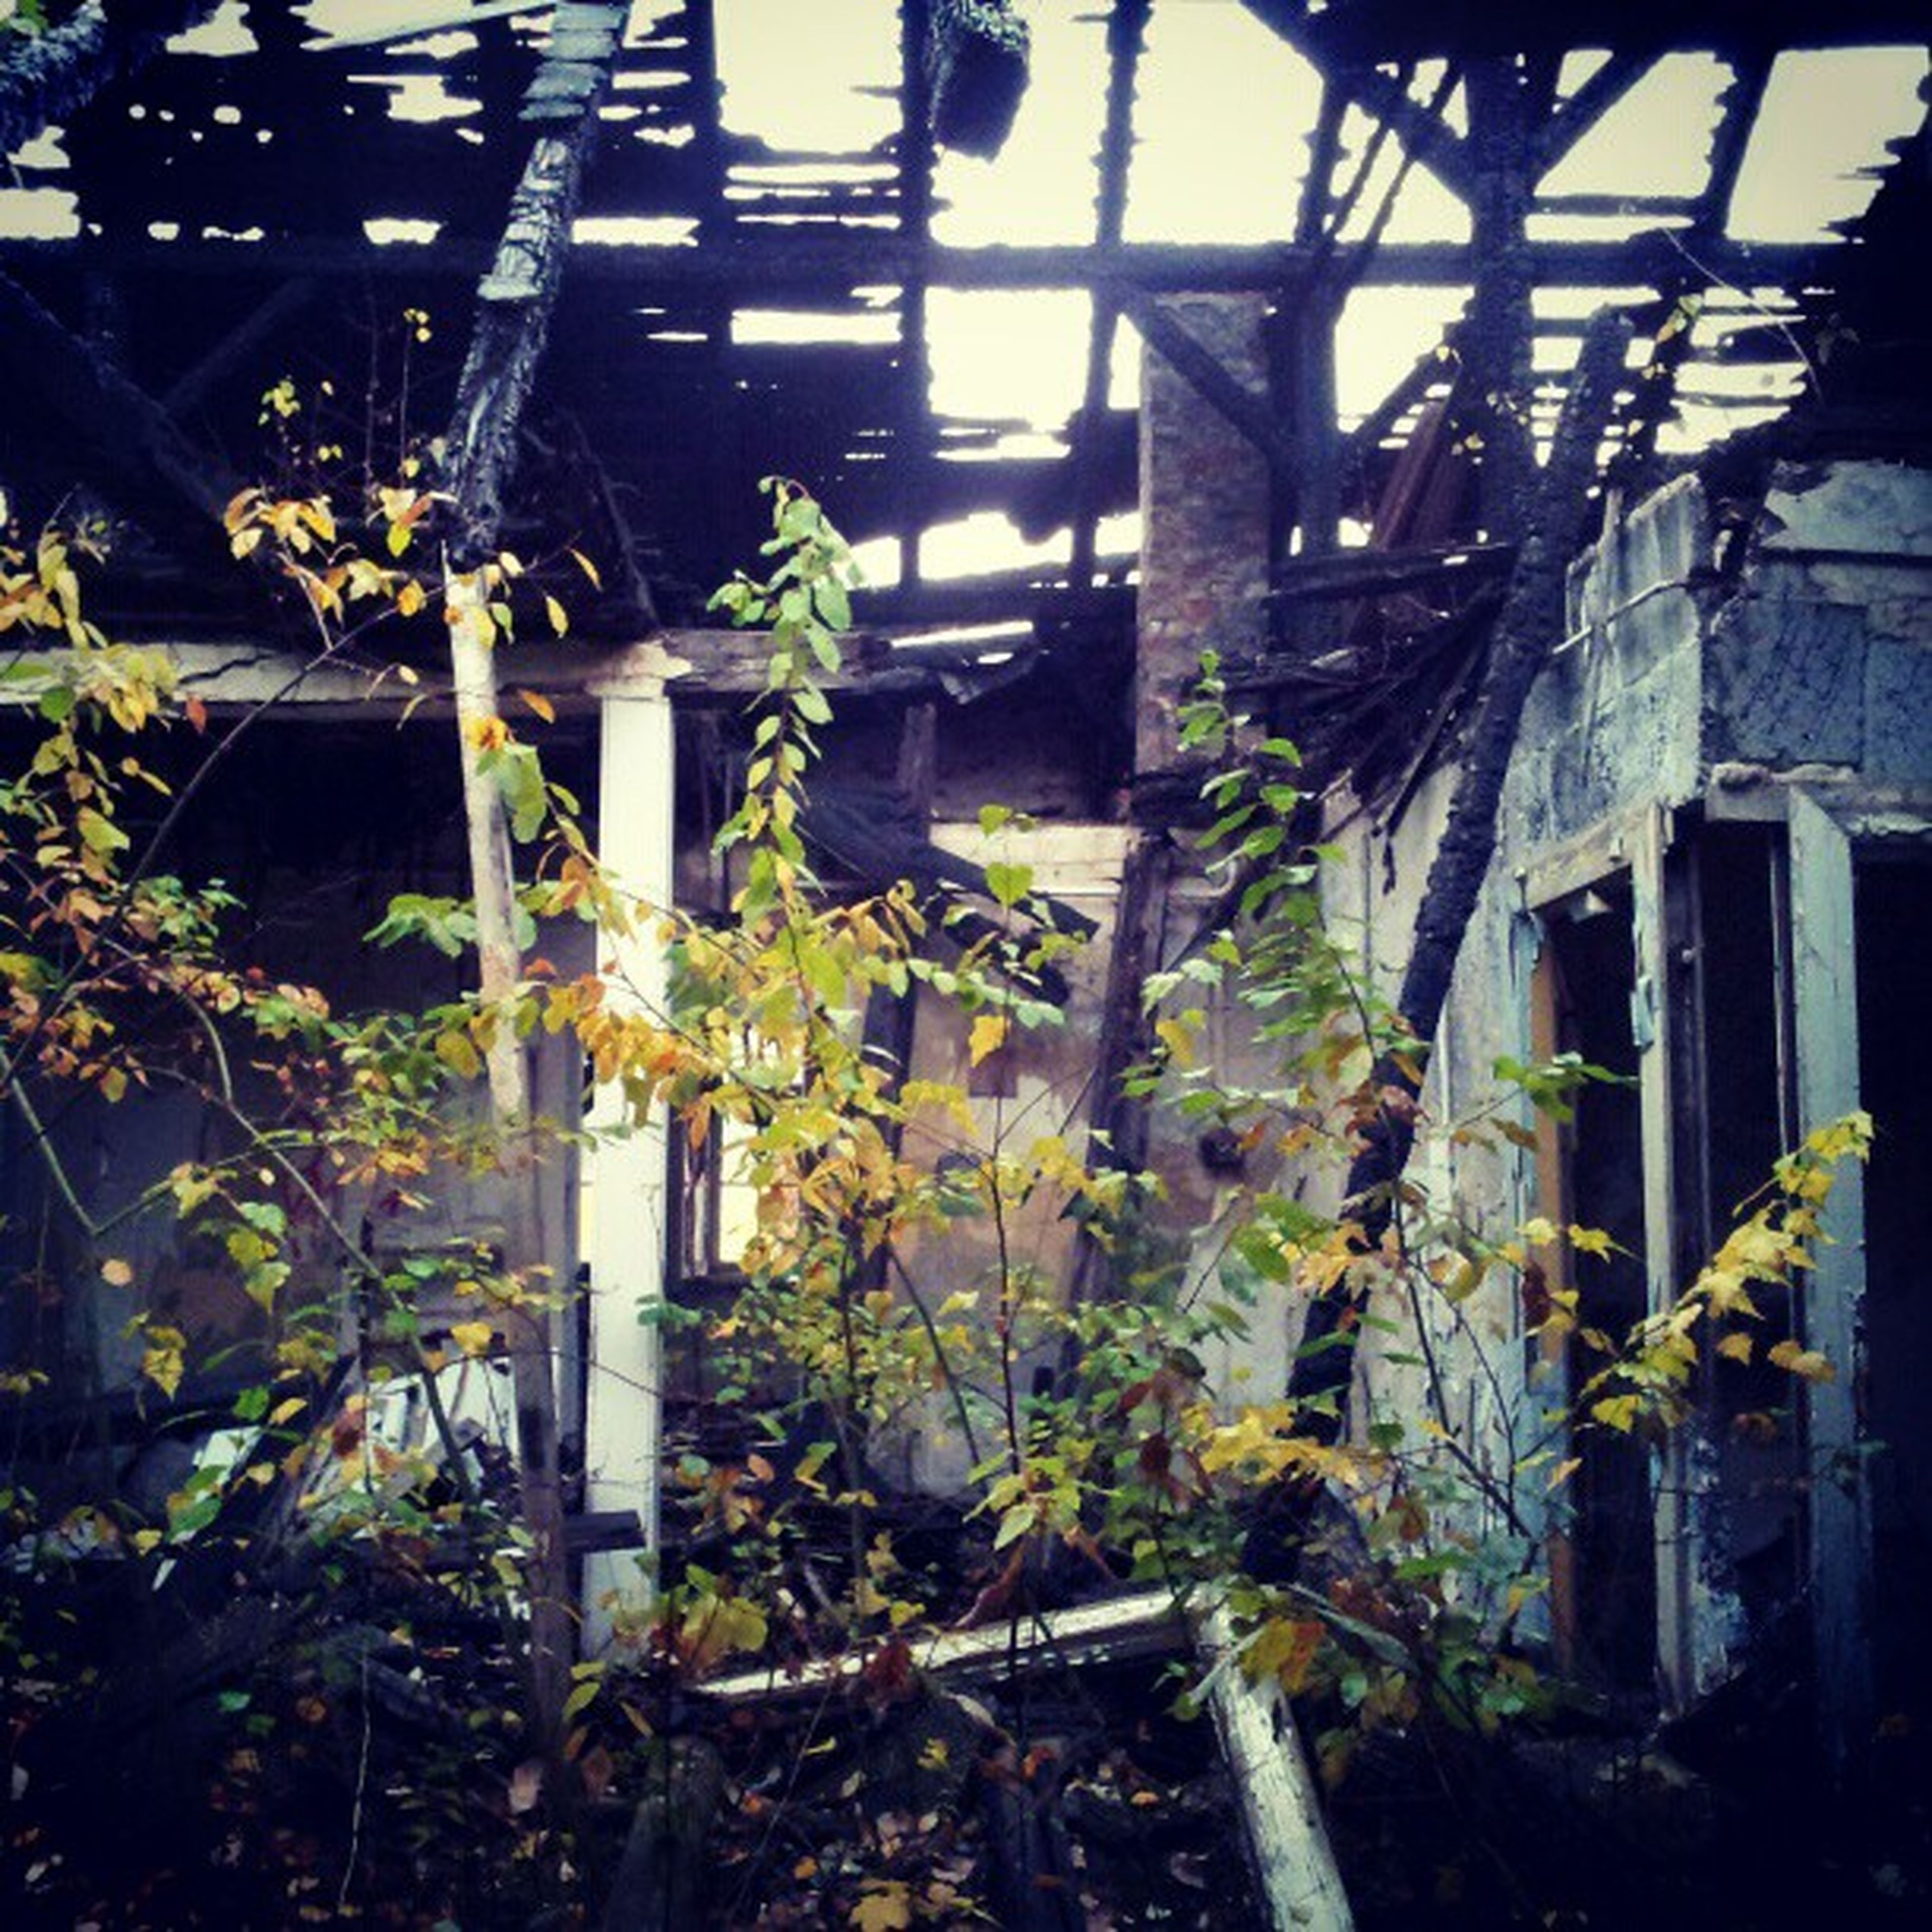 architecture, built structure, building exterior, plant, abandoned, growth, house, potted plant, damaged, day, window, obsolete, indoors, leaf, no people, old, tree, building, wall - building feature, residential structure